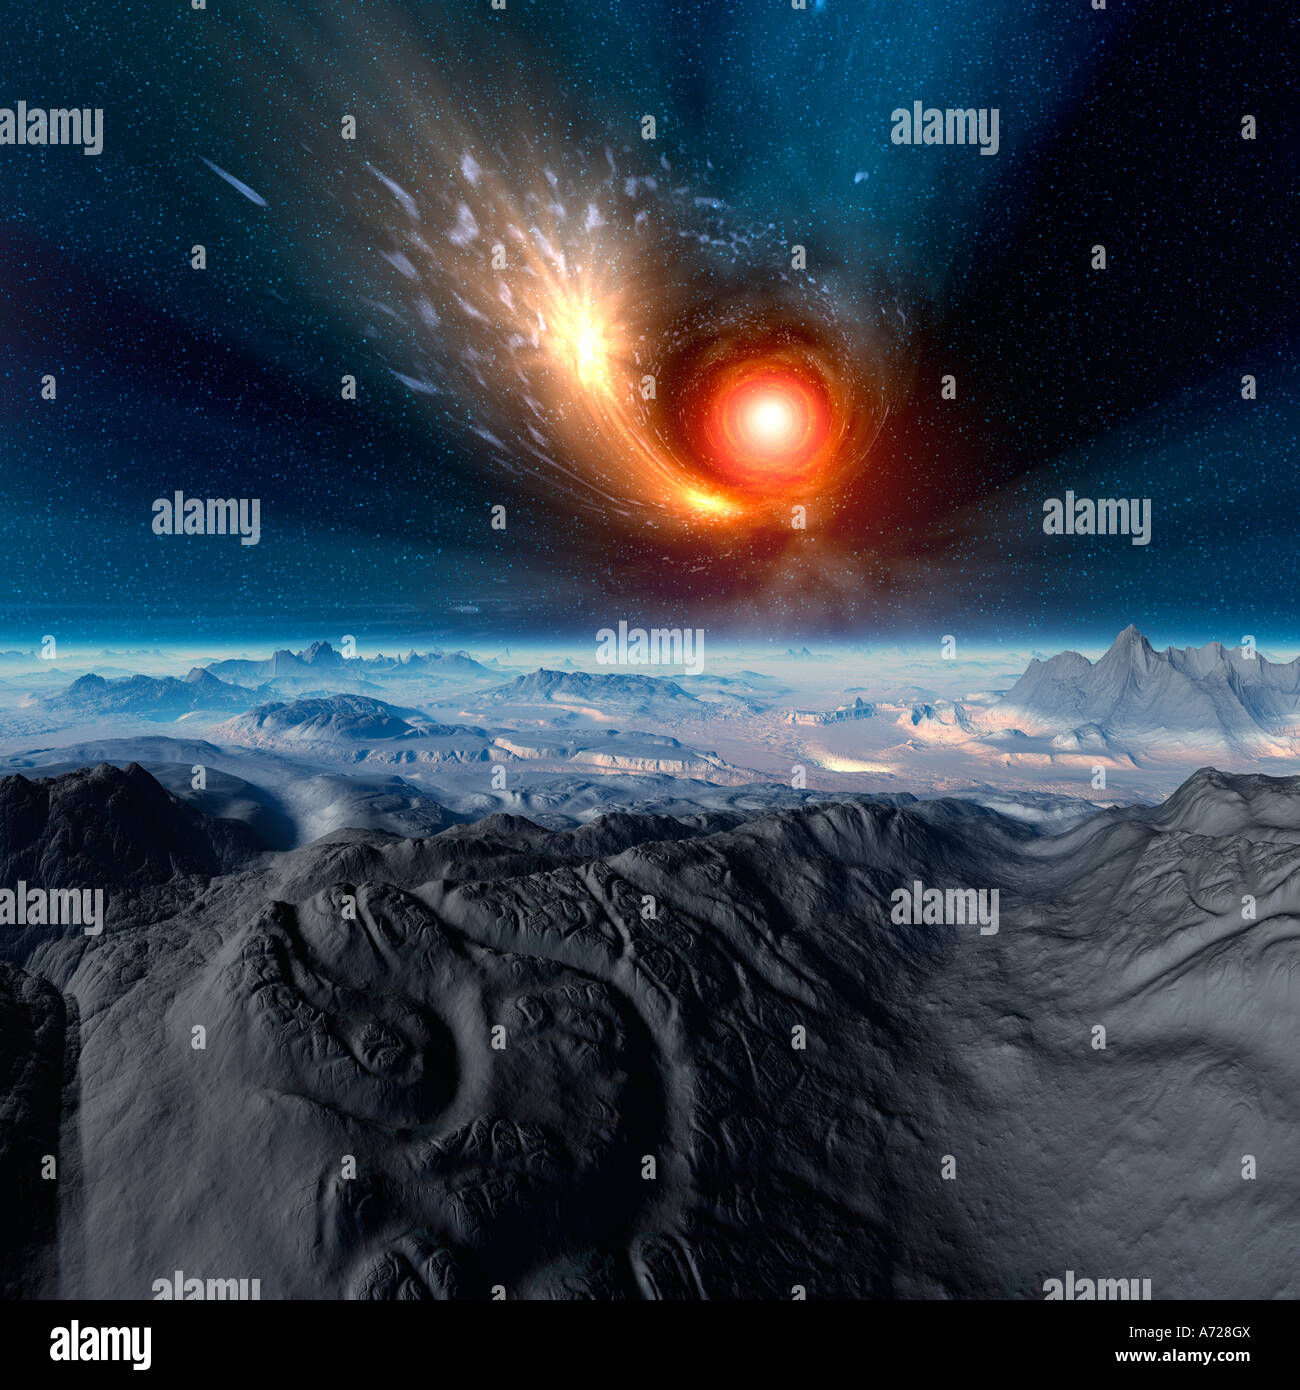 Computer illustration of a wormhole swallowing a star.  Alien, barren landscape in foreground. - Stock Image